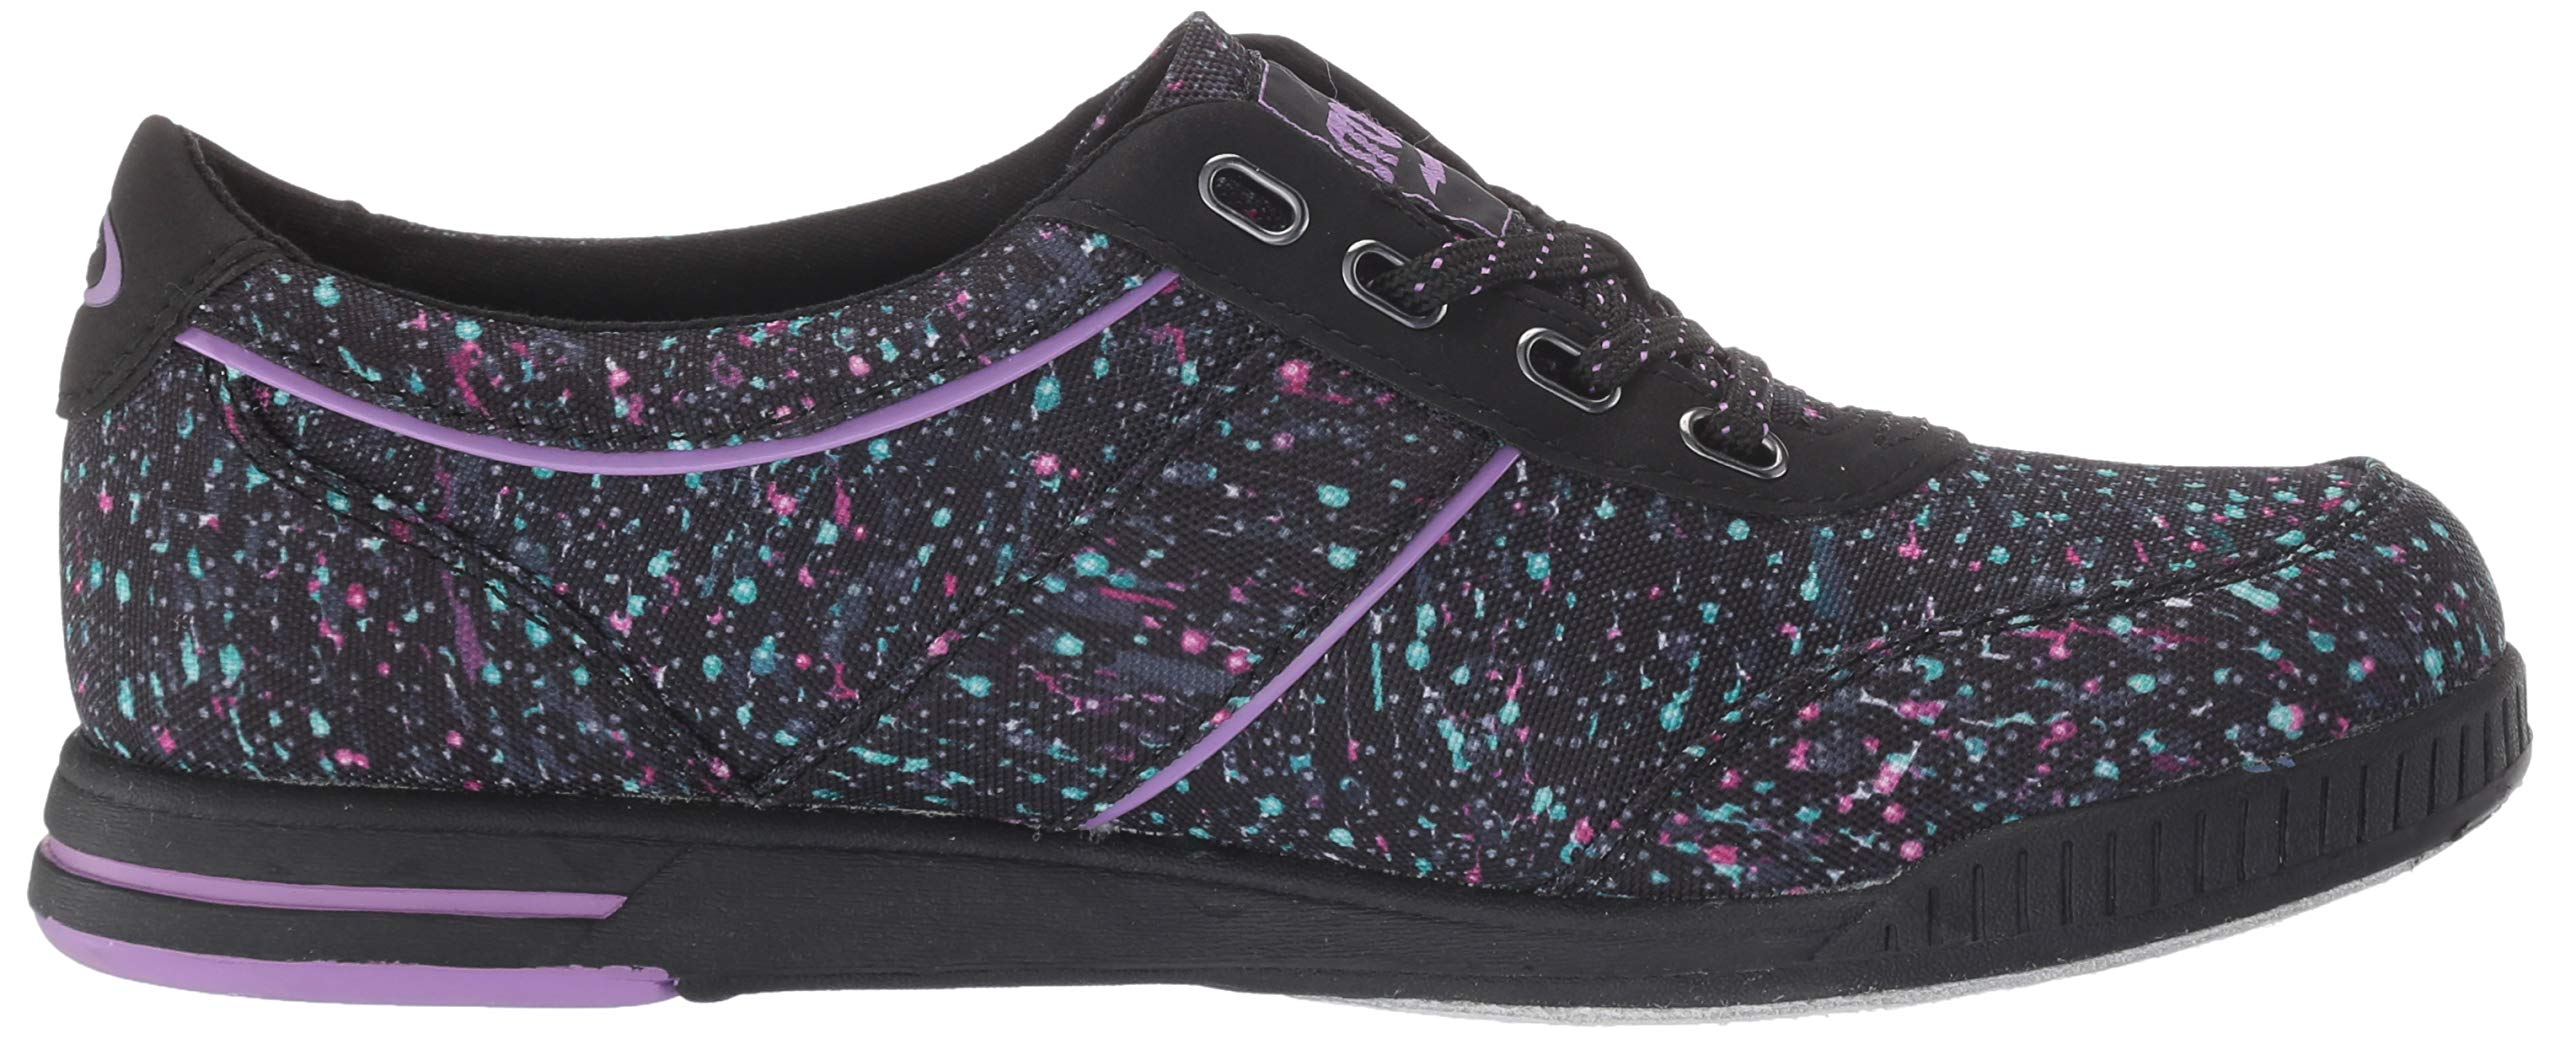 Storm SPSW0000399 060 Bowling Shoes, Multi Color, 6.0 by Storm (Image #7)